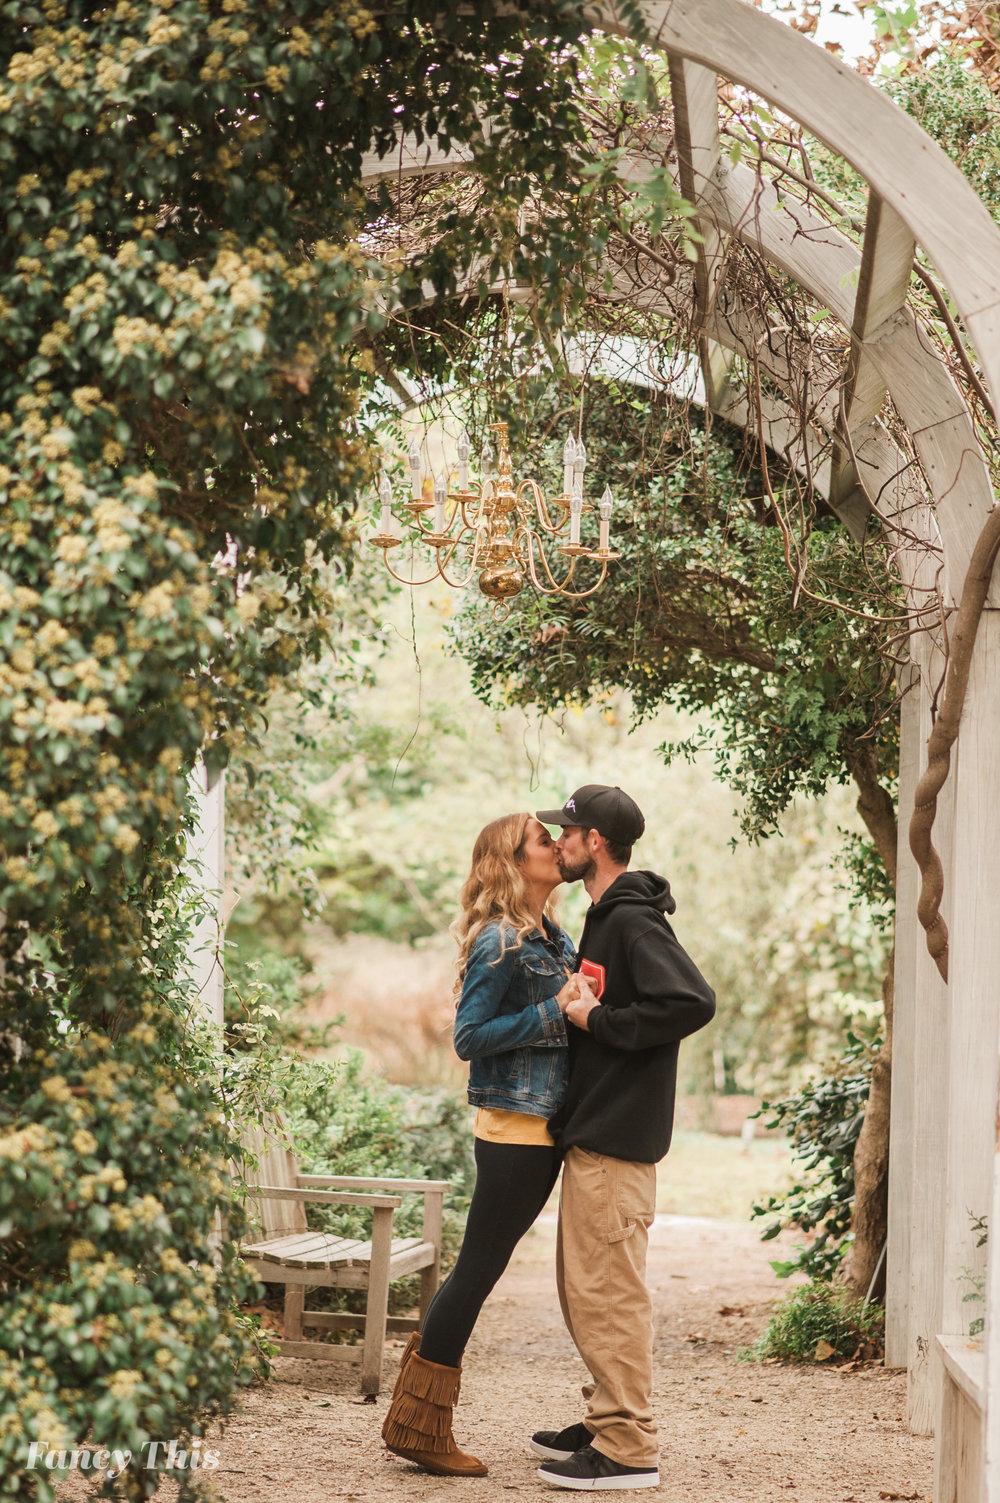 mikeandkelly_engaged_fancythis-5.jpg